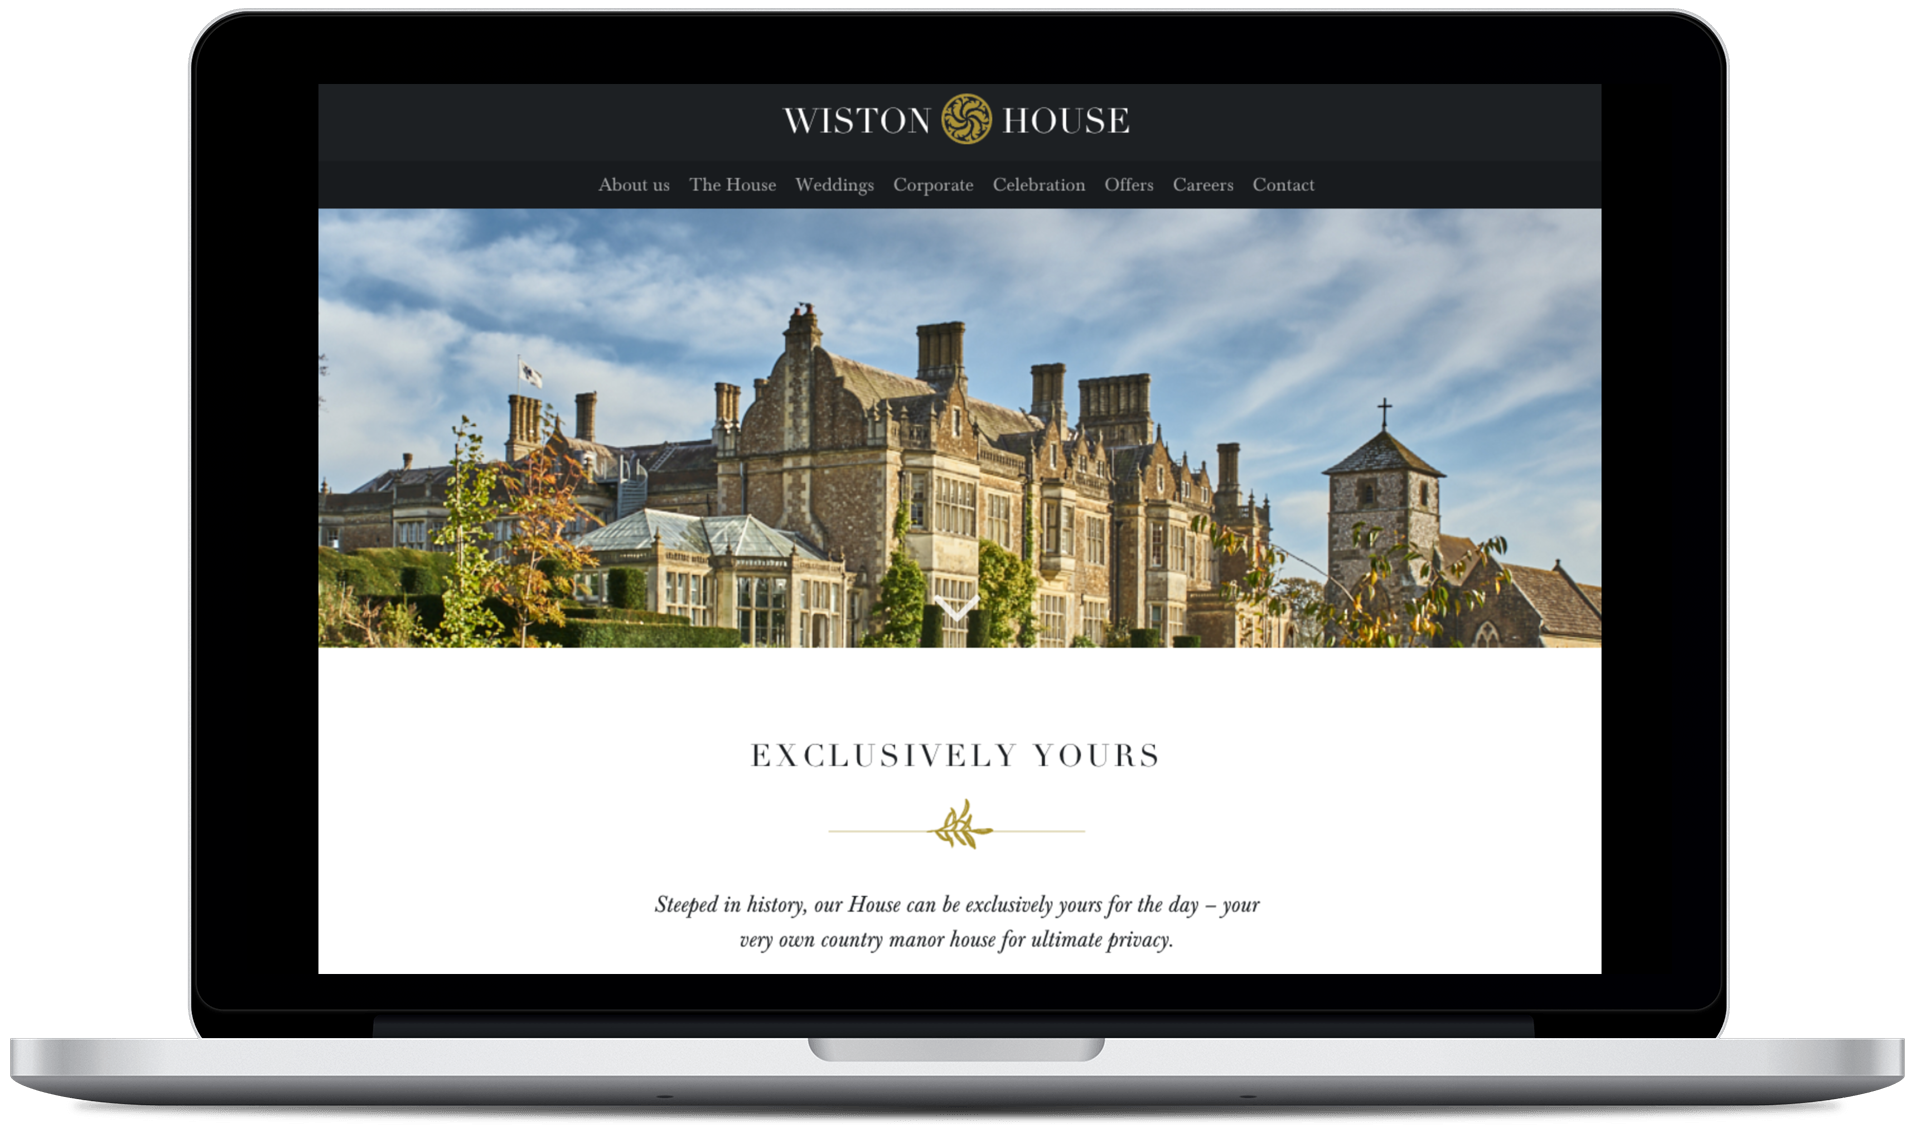 Helping Wiston House attract premium wedding business